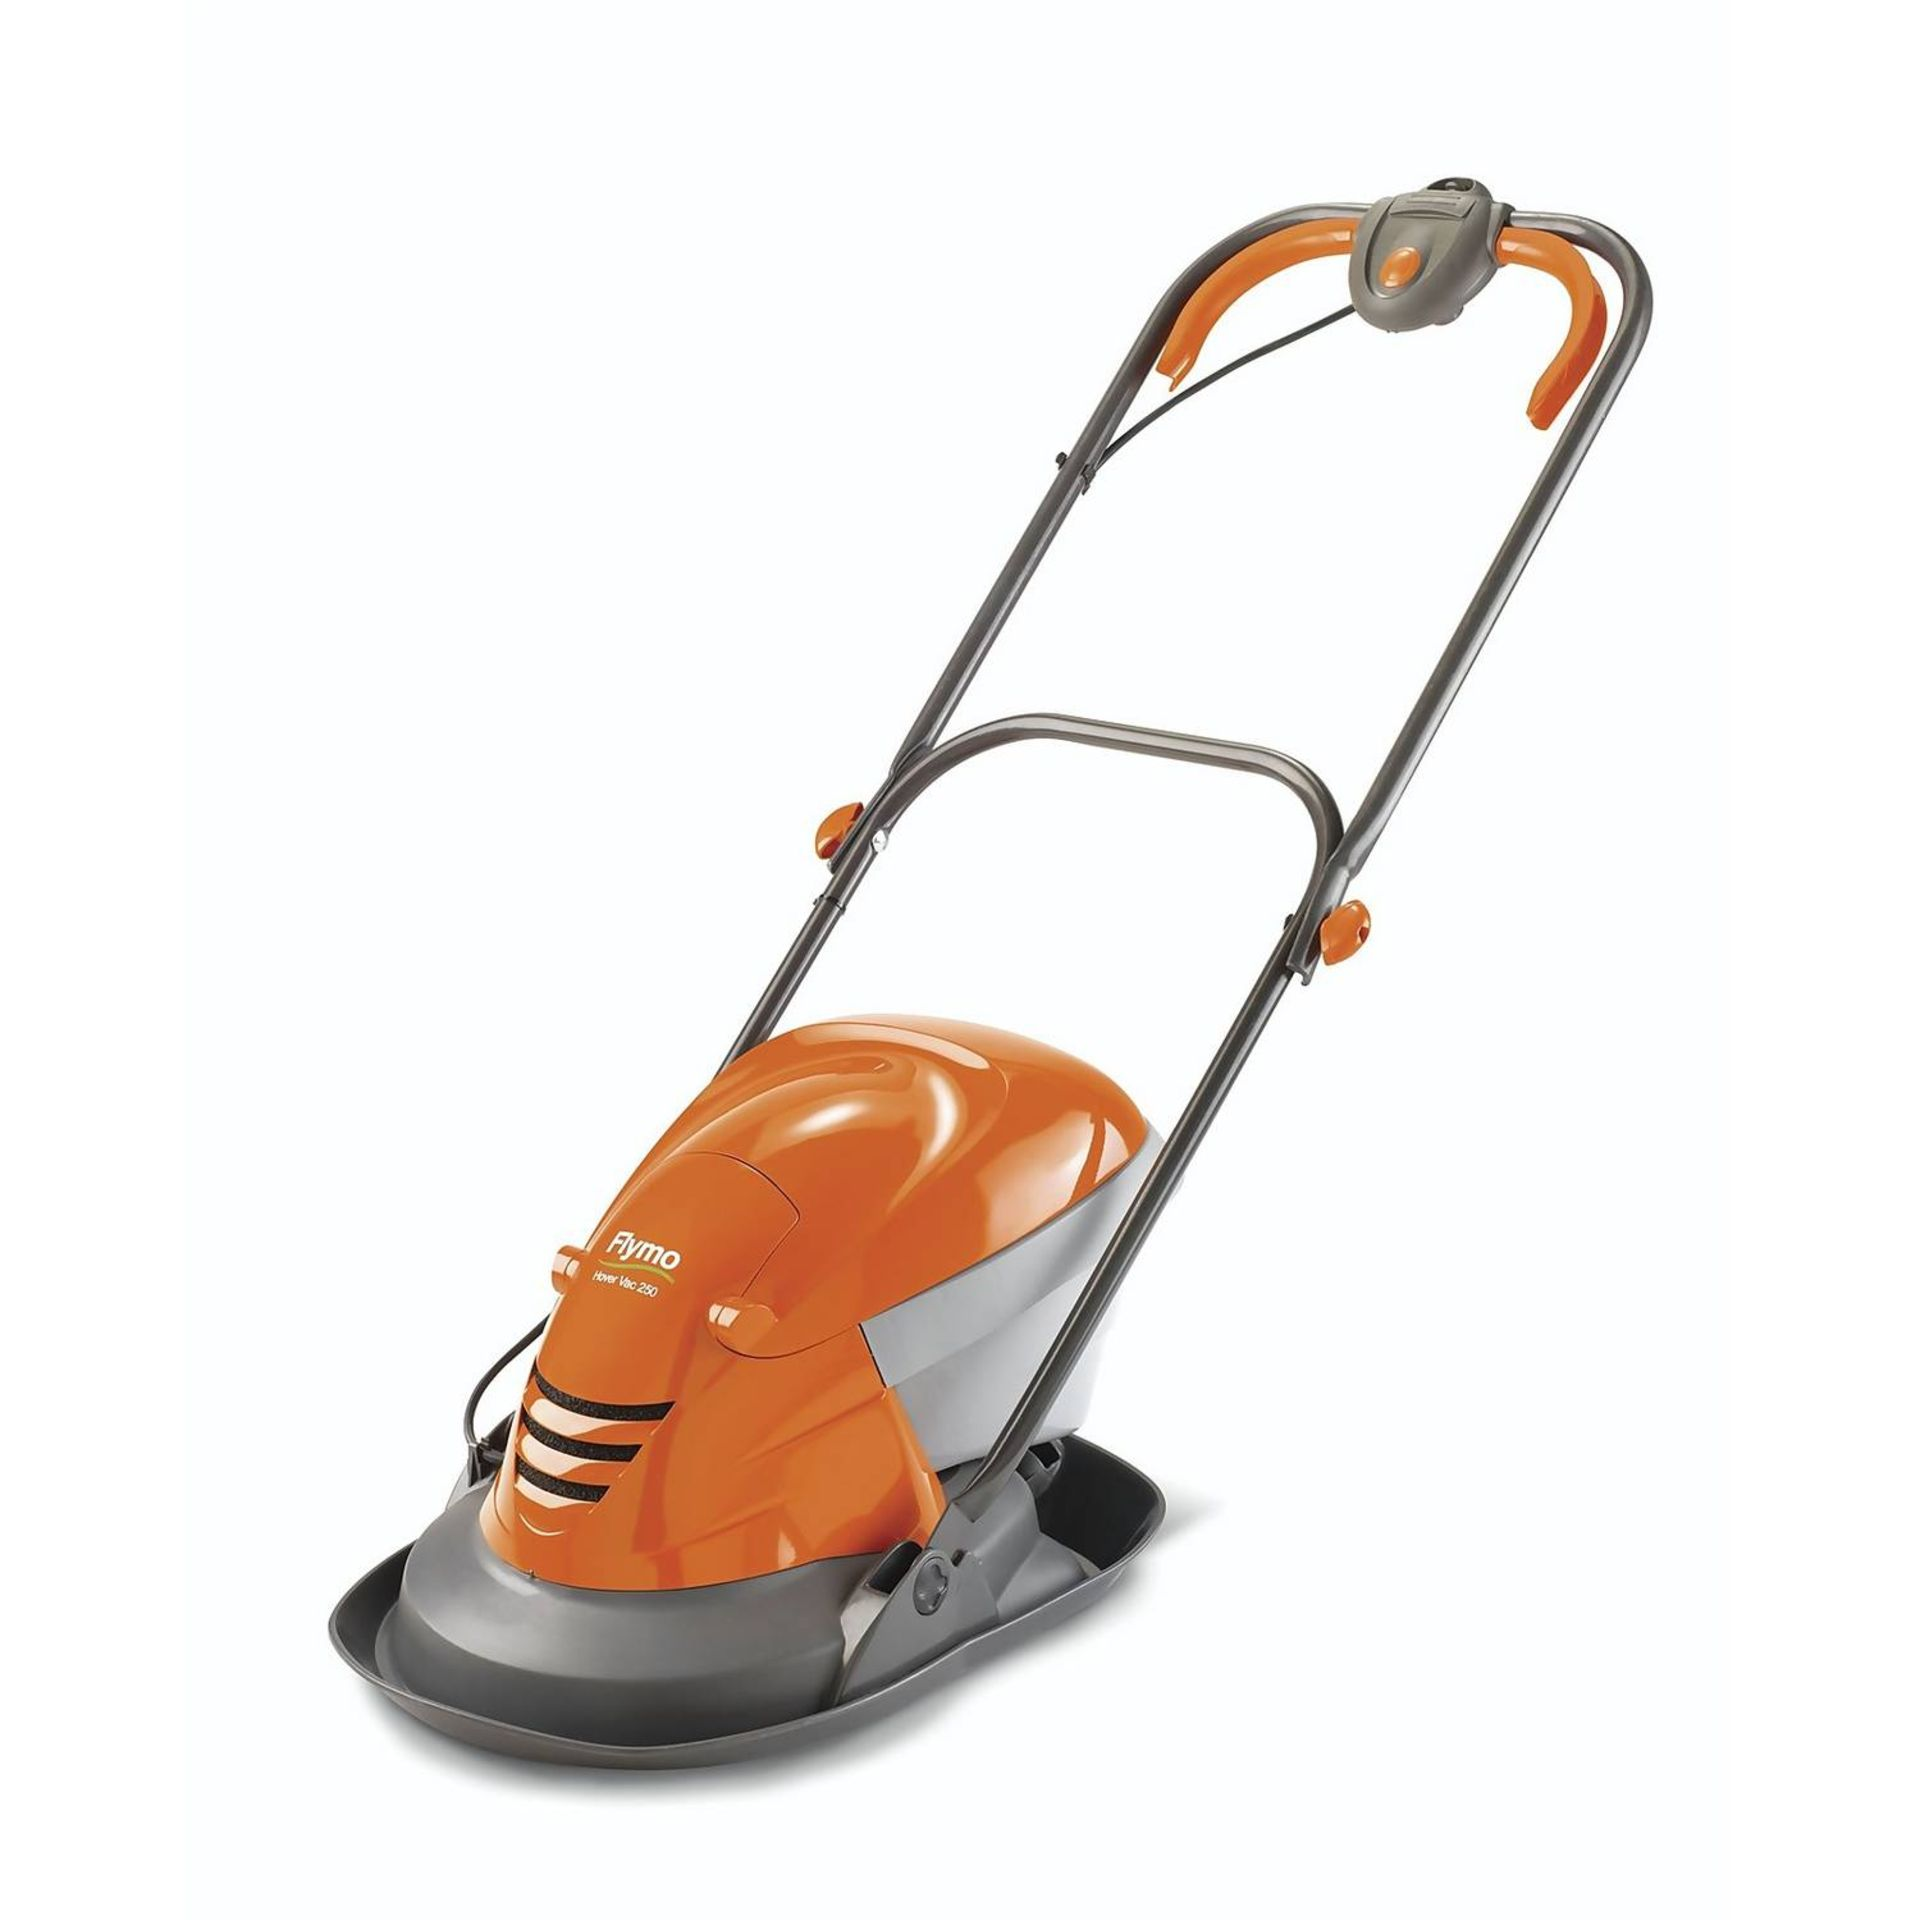 (P10) 1x Flymo Hover Vac 250 RRP £80. New, Sealed Item With Some Box Damage.